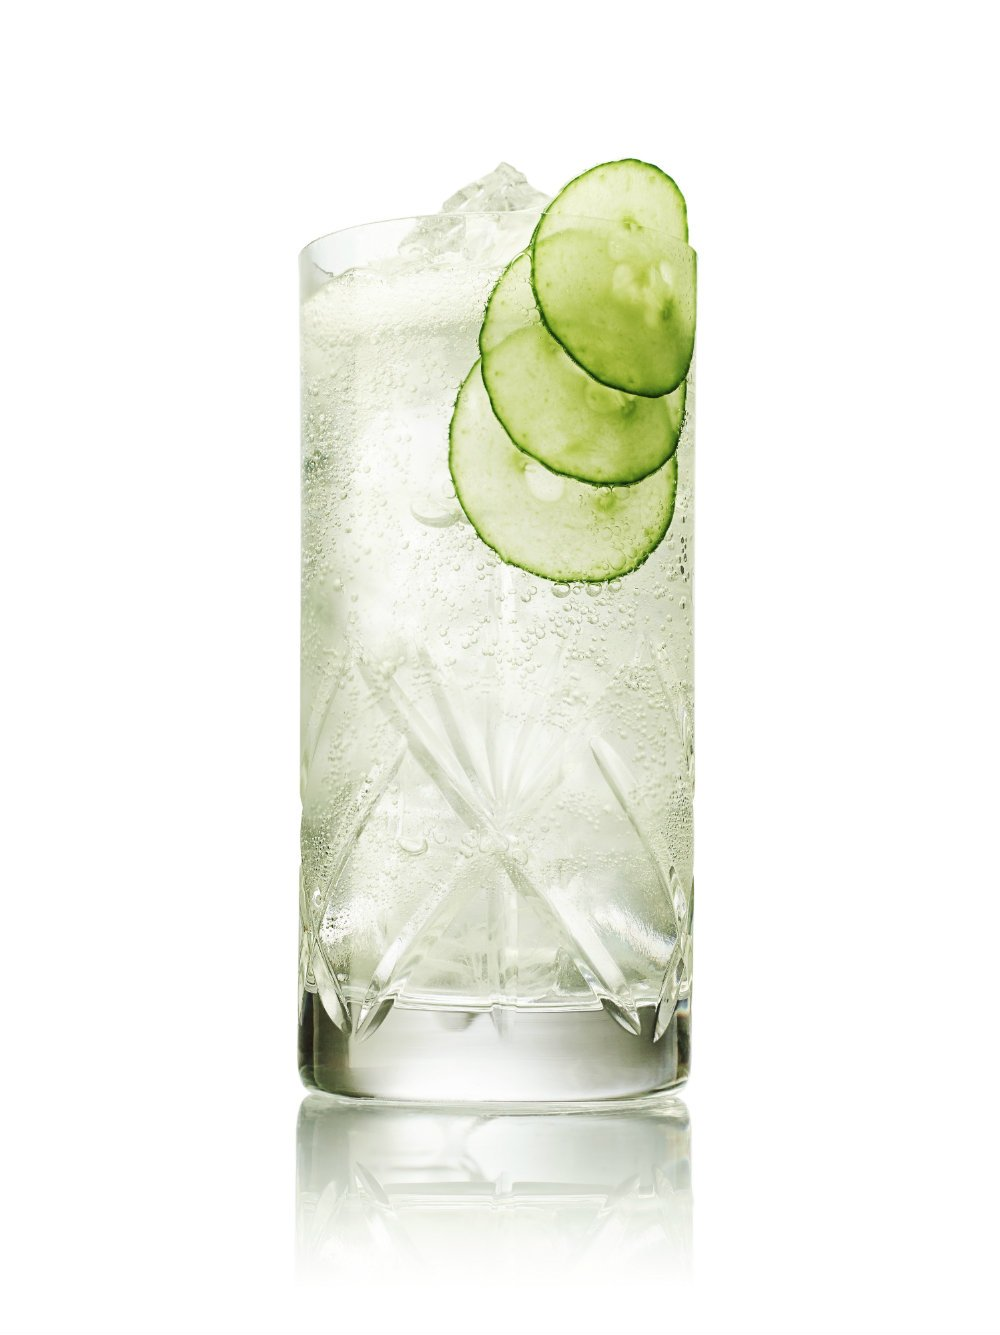 4 cucumber cocktails to keep you cool this summer good l i f e r e p o r t com. Black Bedroom Furniture Sets. Home Design Ideas